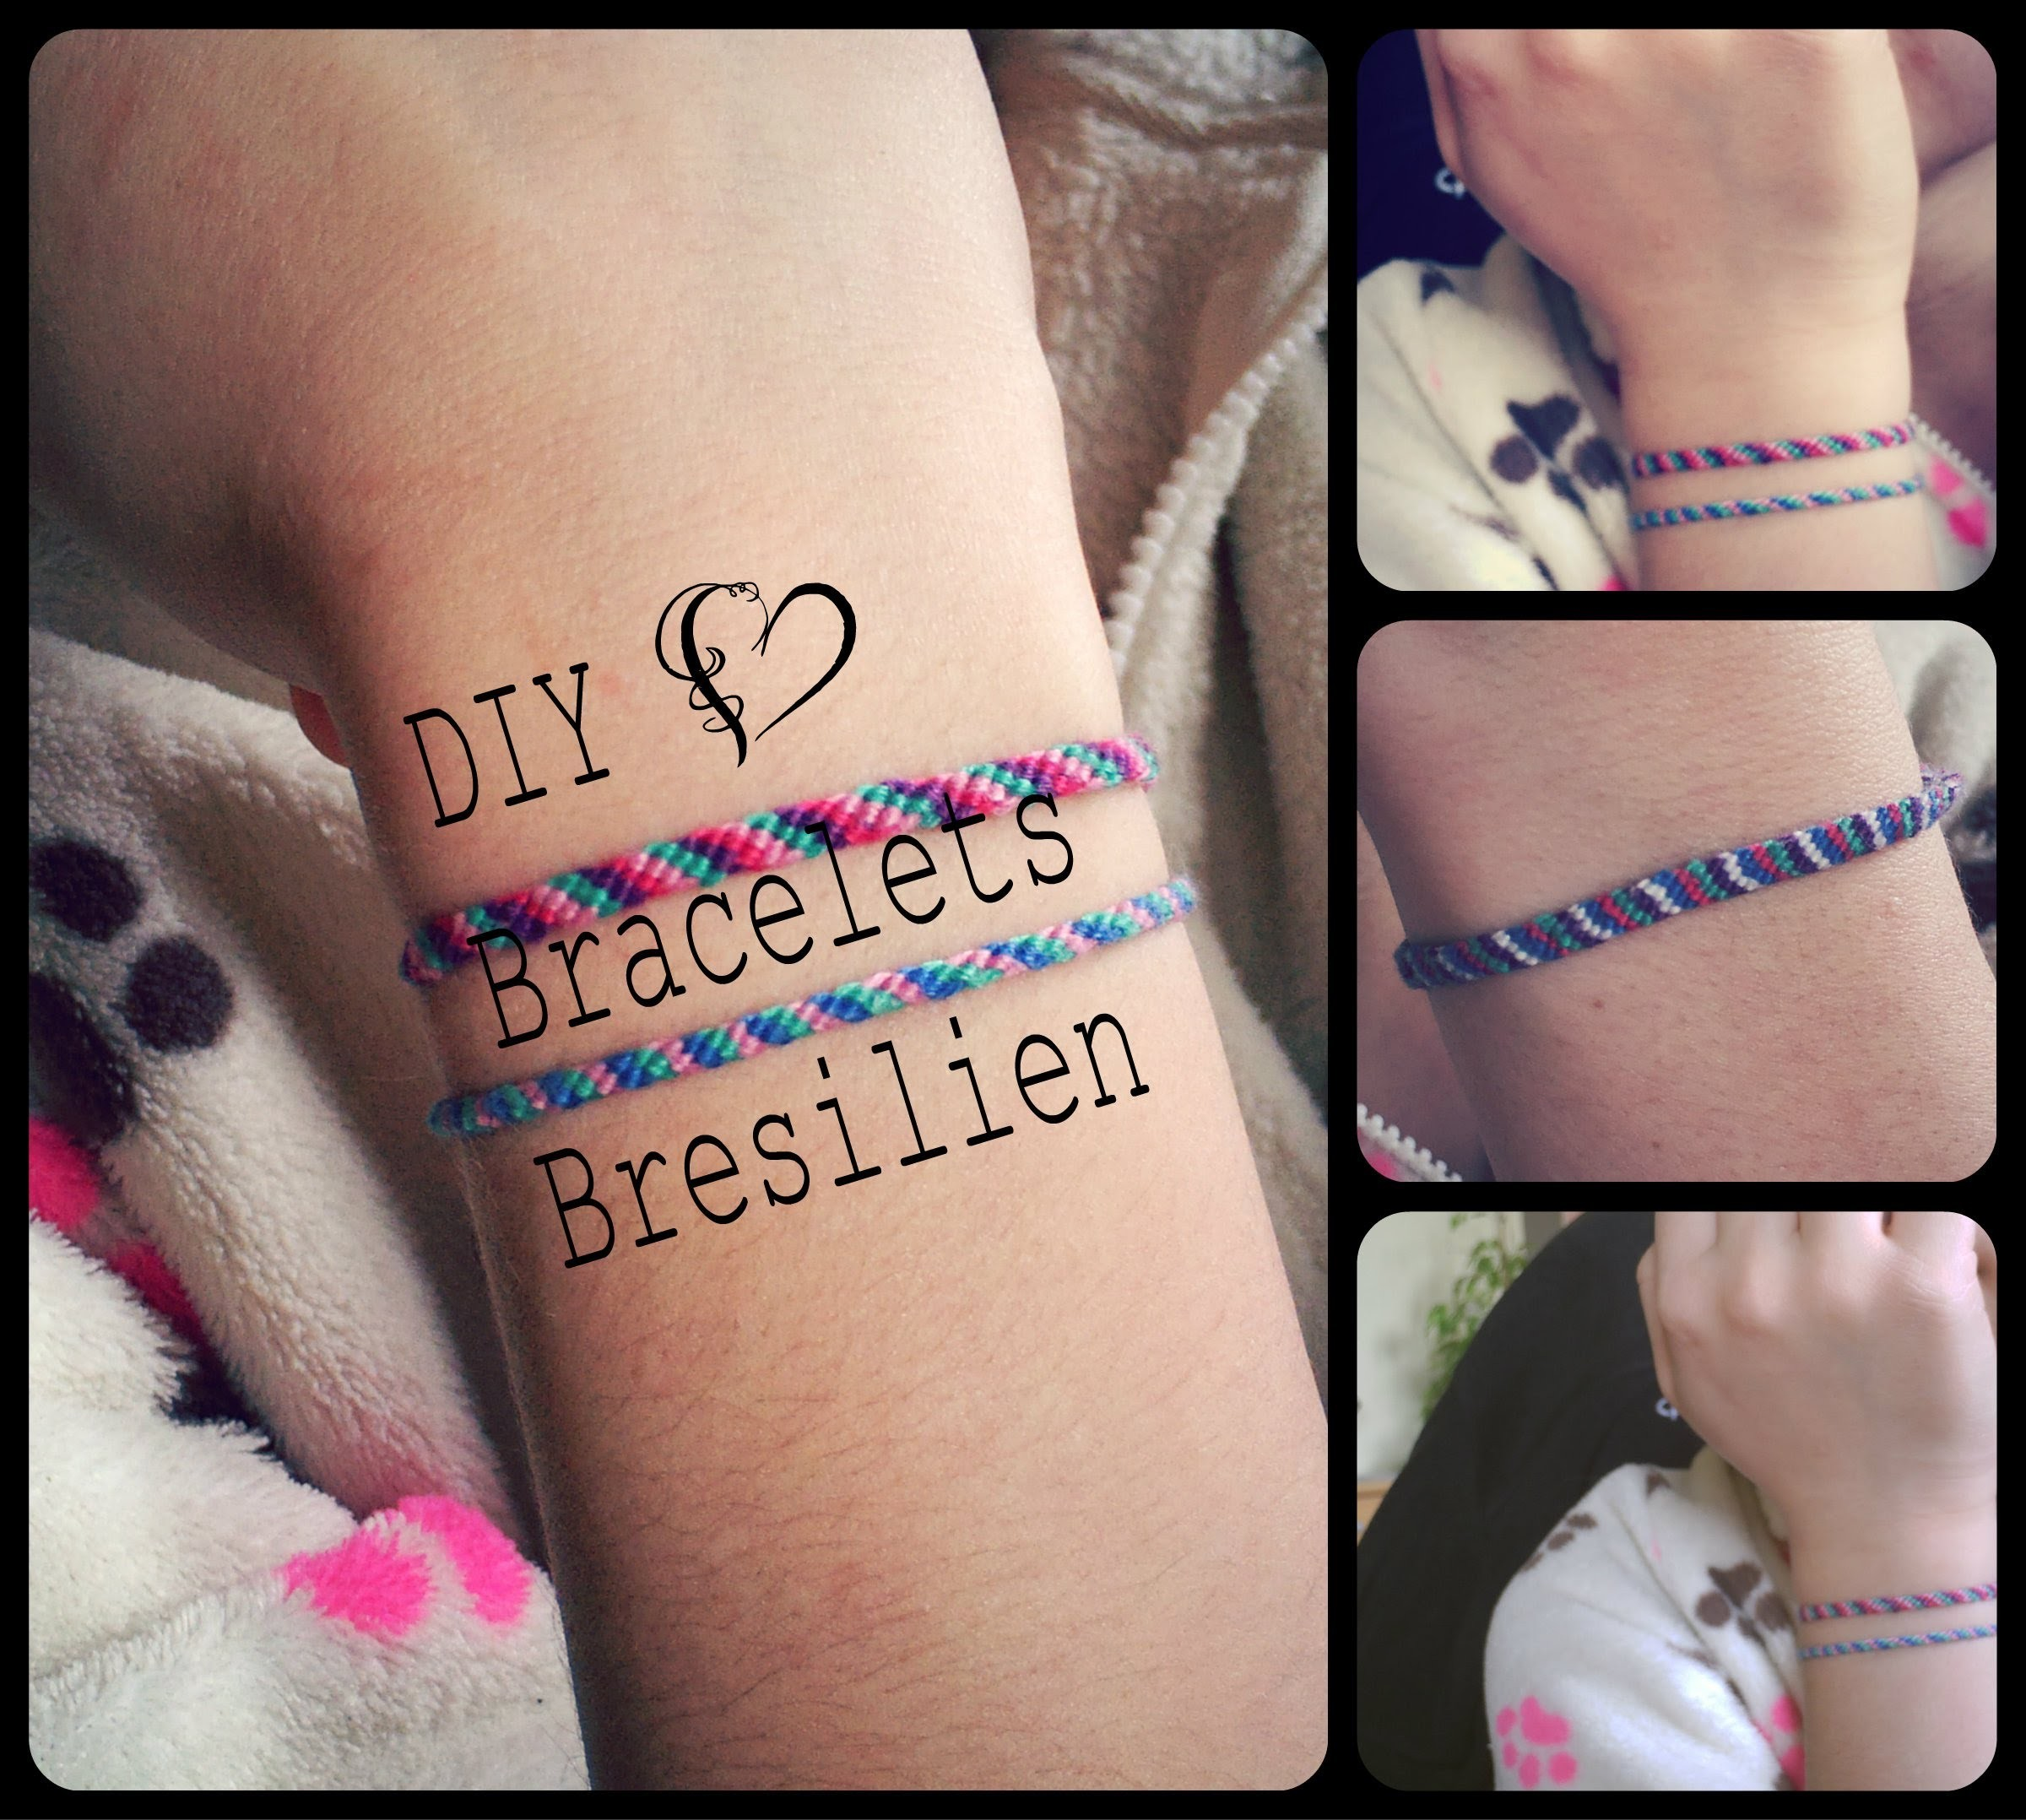 ♥ DIY. Bracelets Bresilien | Heather's Fashion ♥